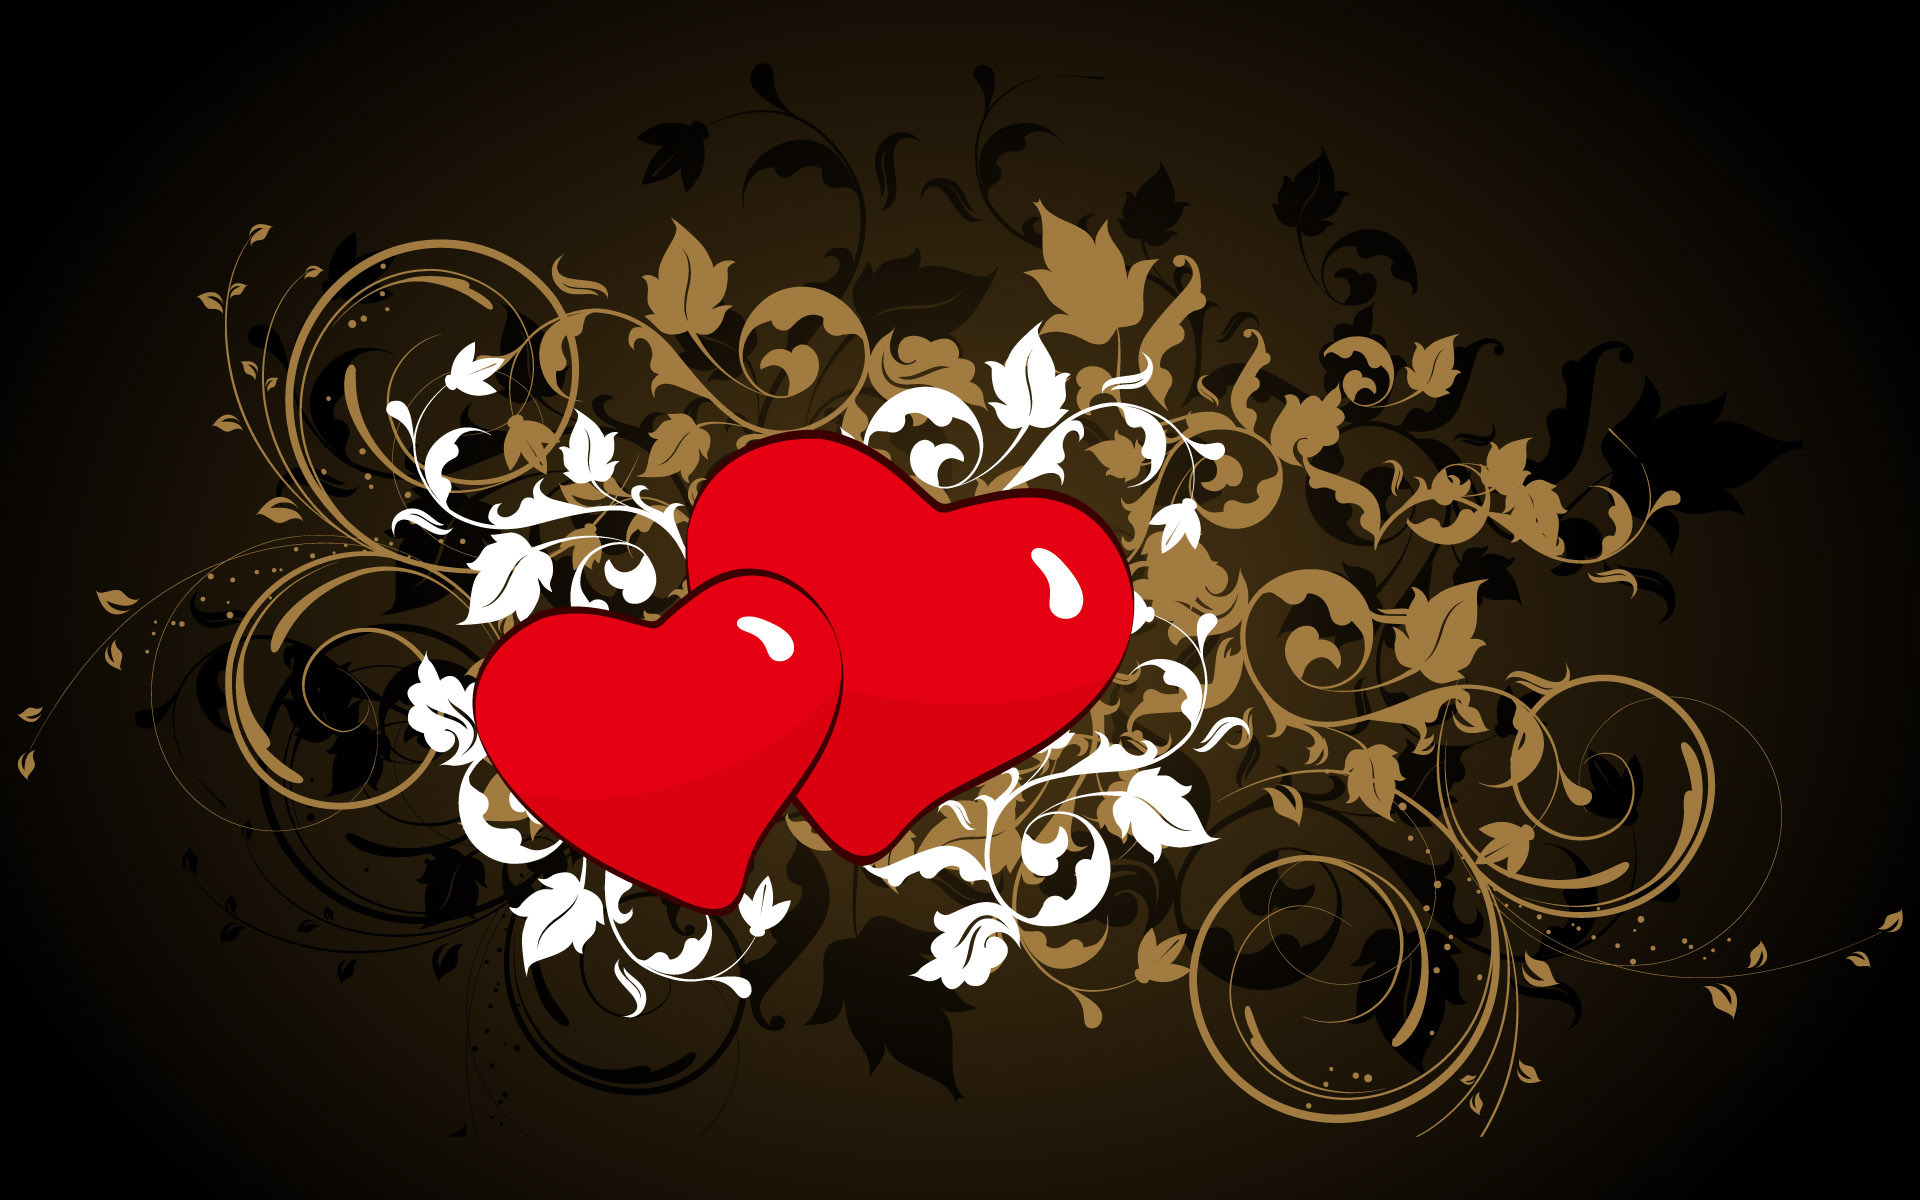 Love Wallpaper In Pc : Love Wallpaper - Love Wallpaper (4187474) - Fanpop